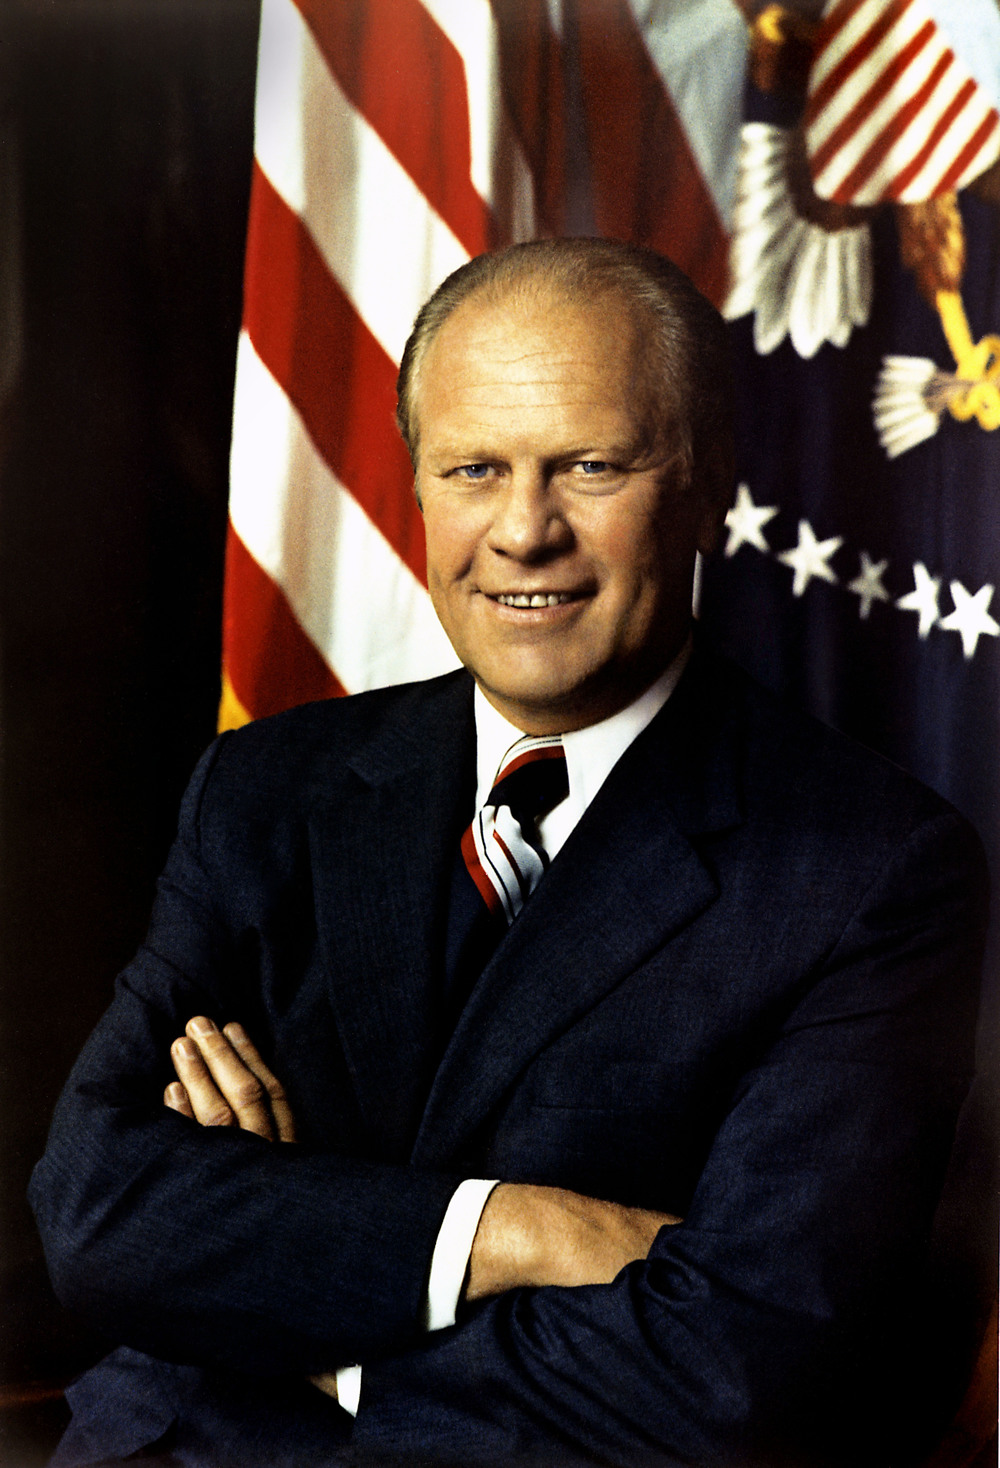 37th US President Brother Gerald Ford  (Omicron-Michigan '35)